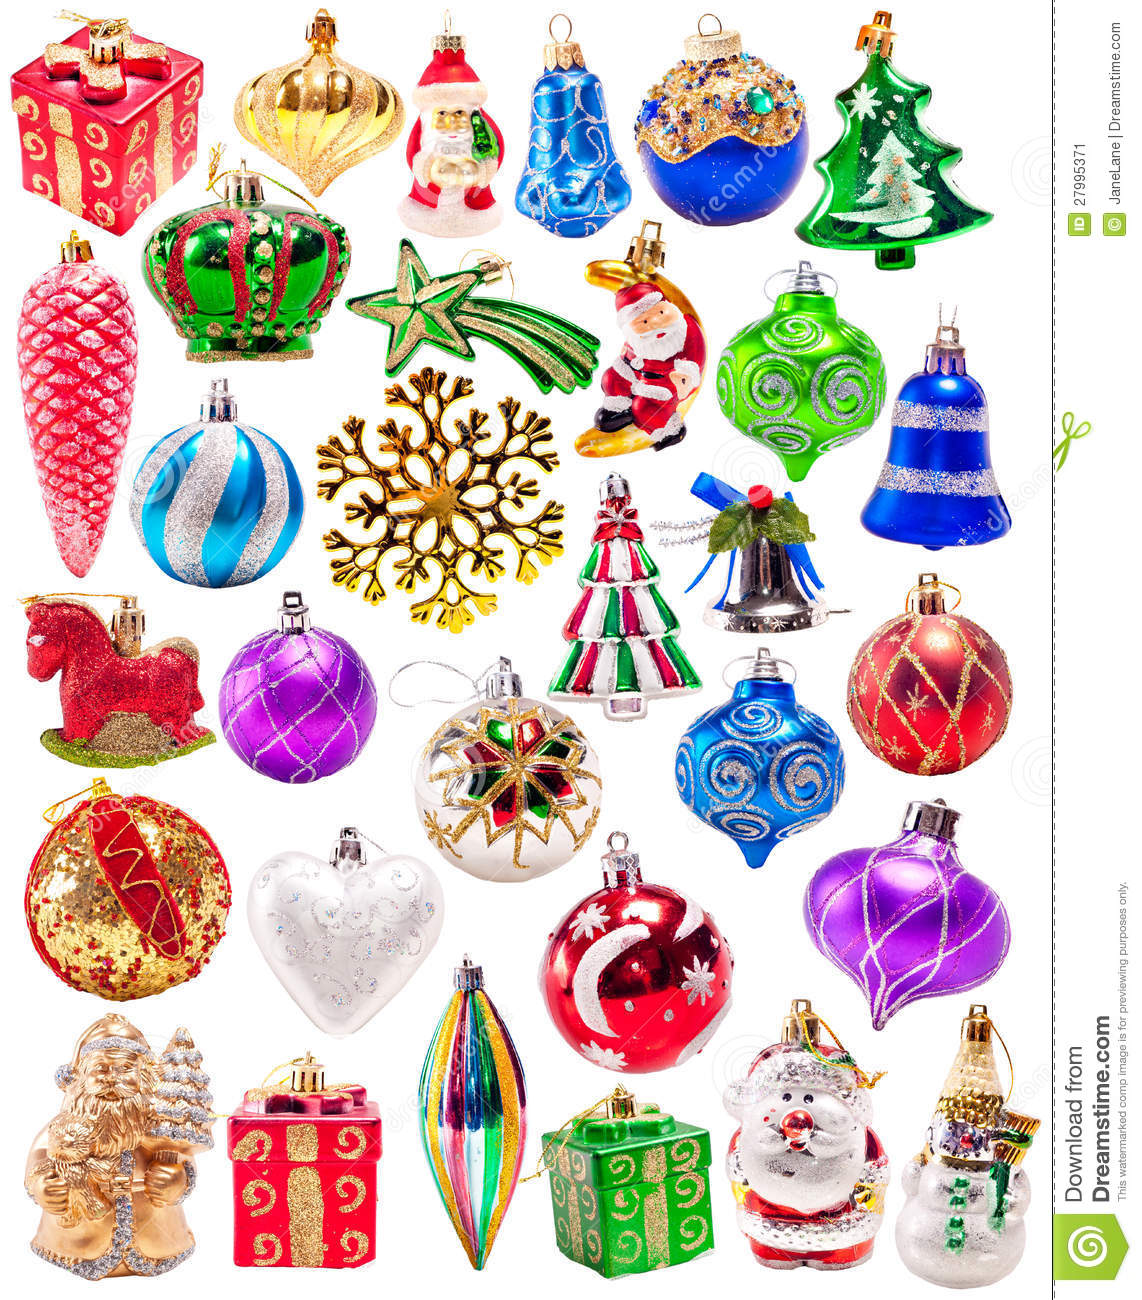 colorful new year decoration - photo #26